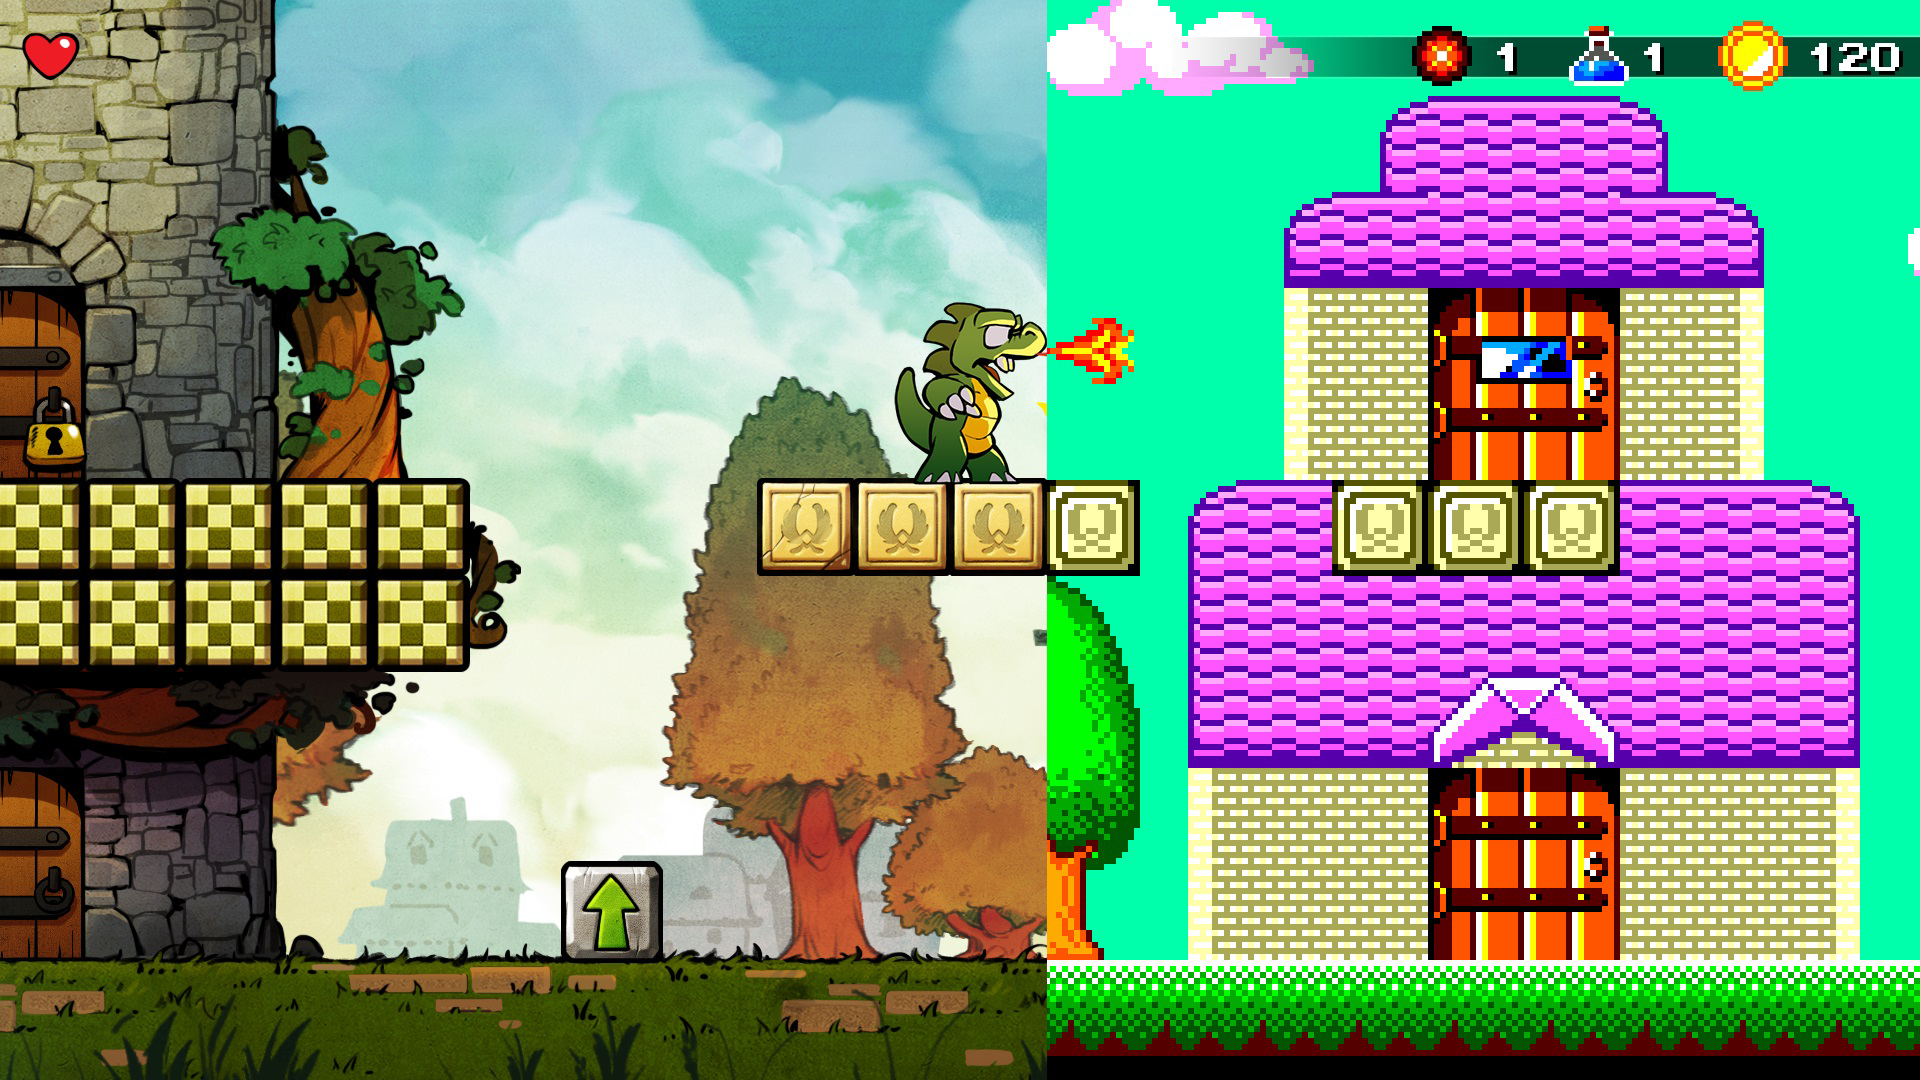 『Wonder Boy: The Dragon's Trap』ゲーム画面